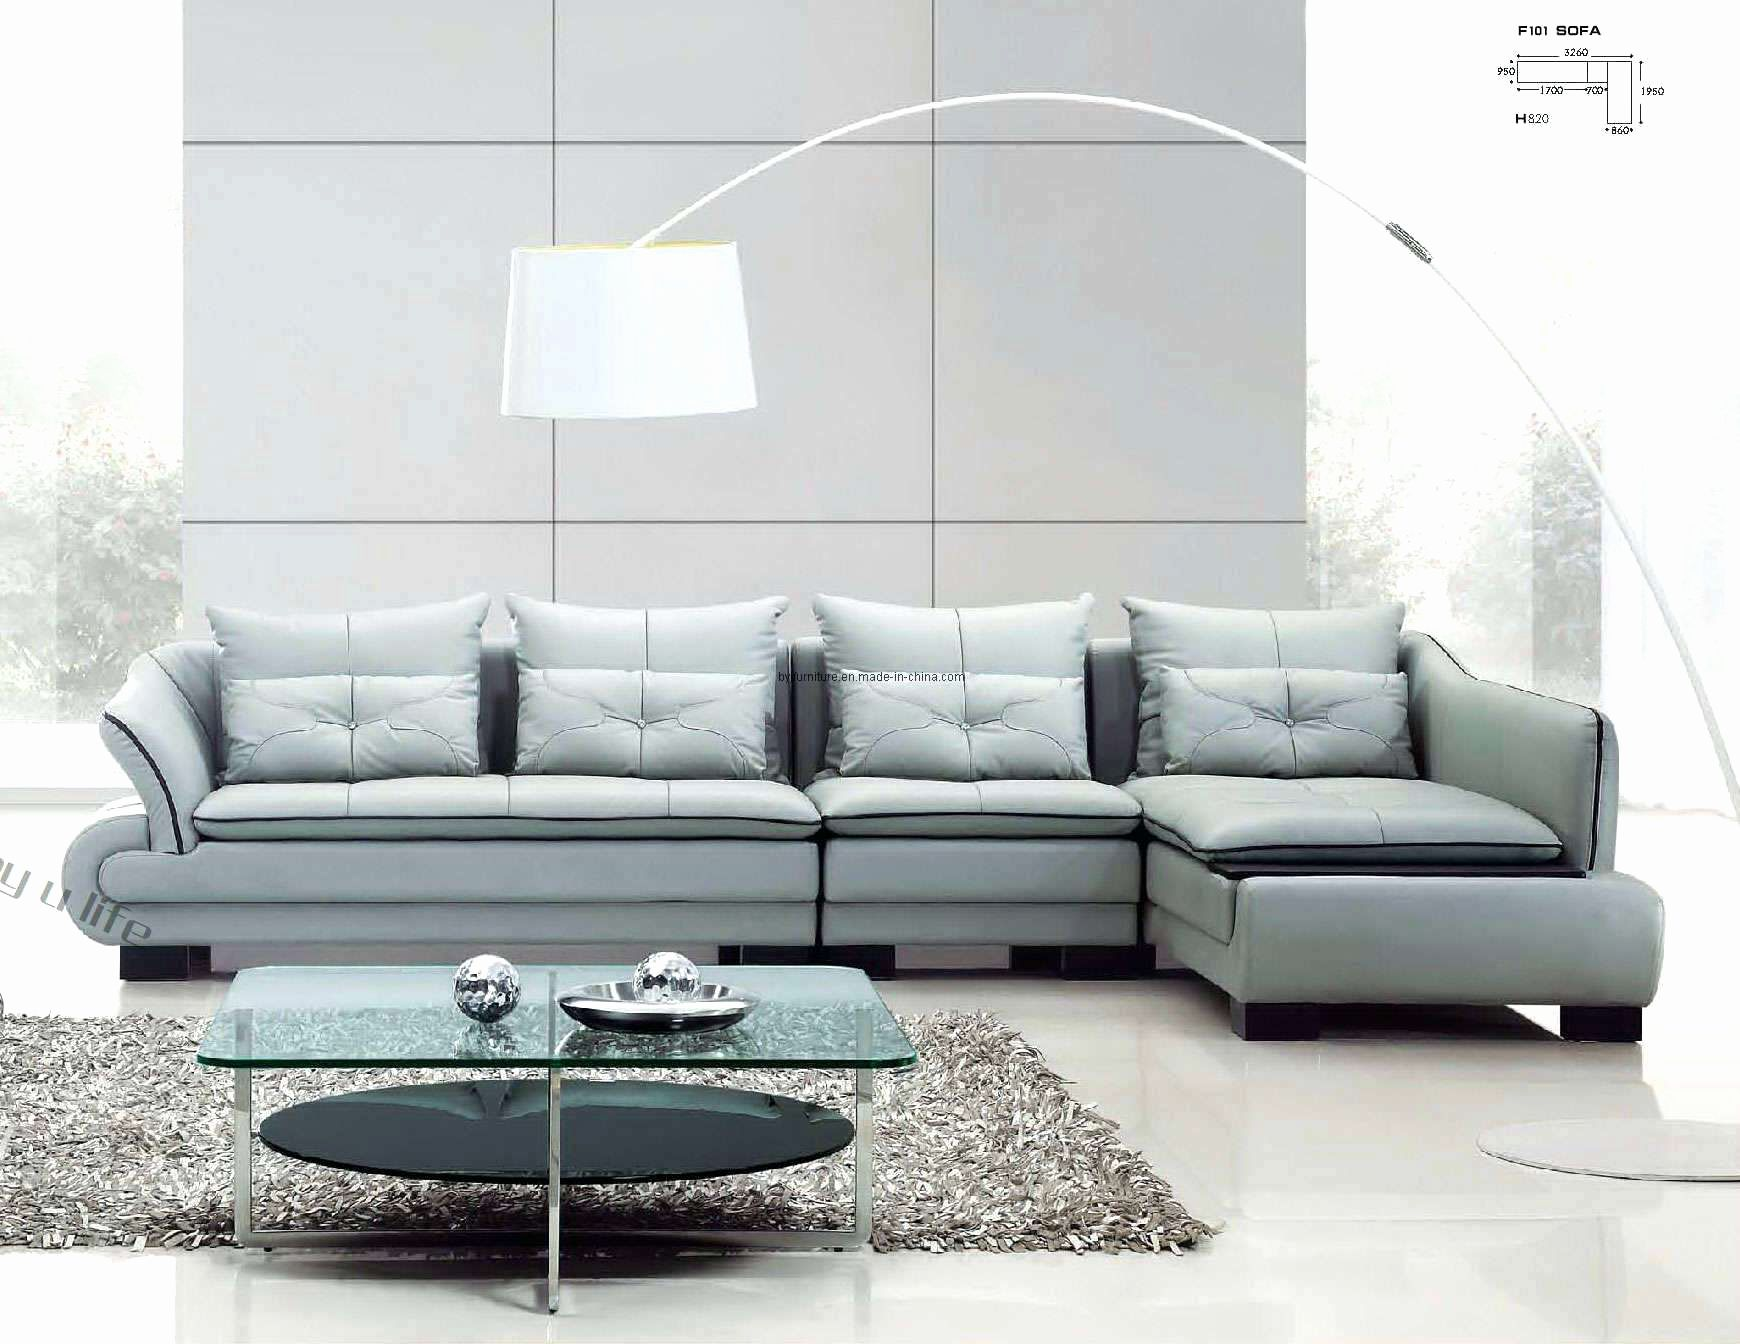 Awesome Modern Office Sofas Image Modern Office Sofas Lovely